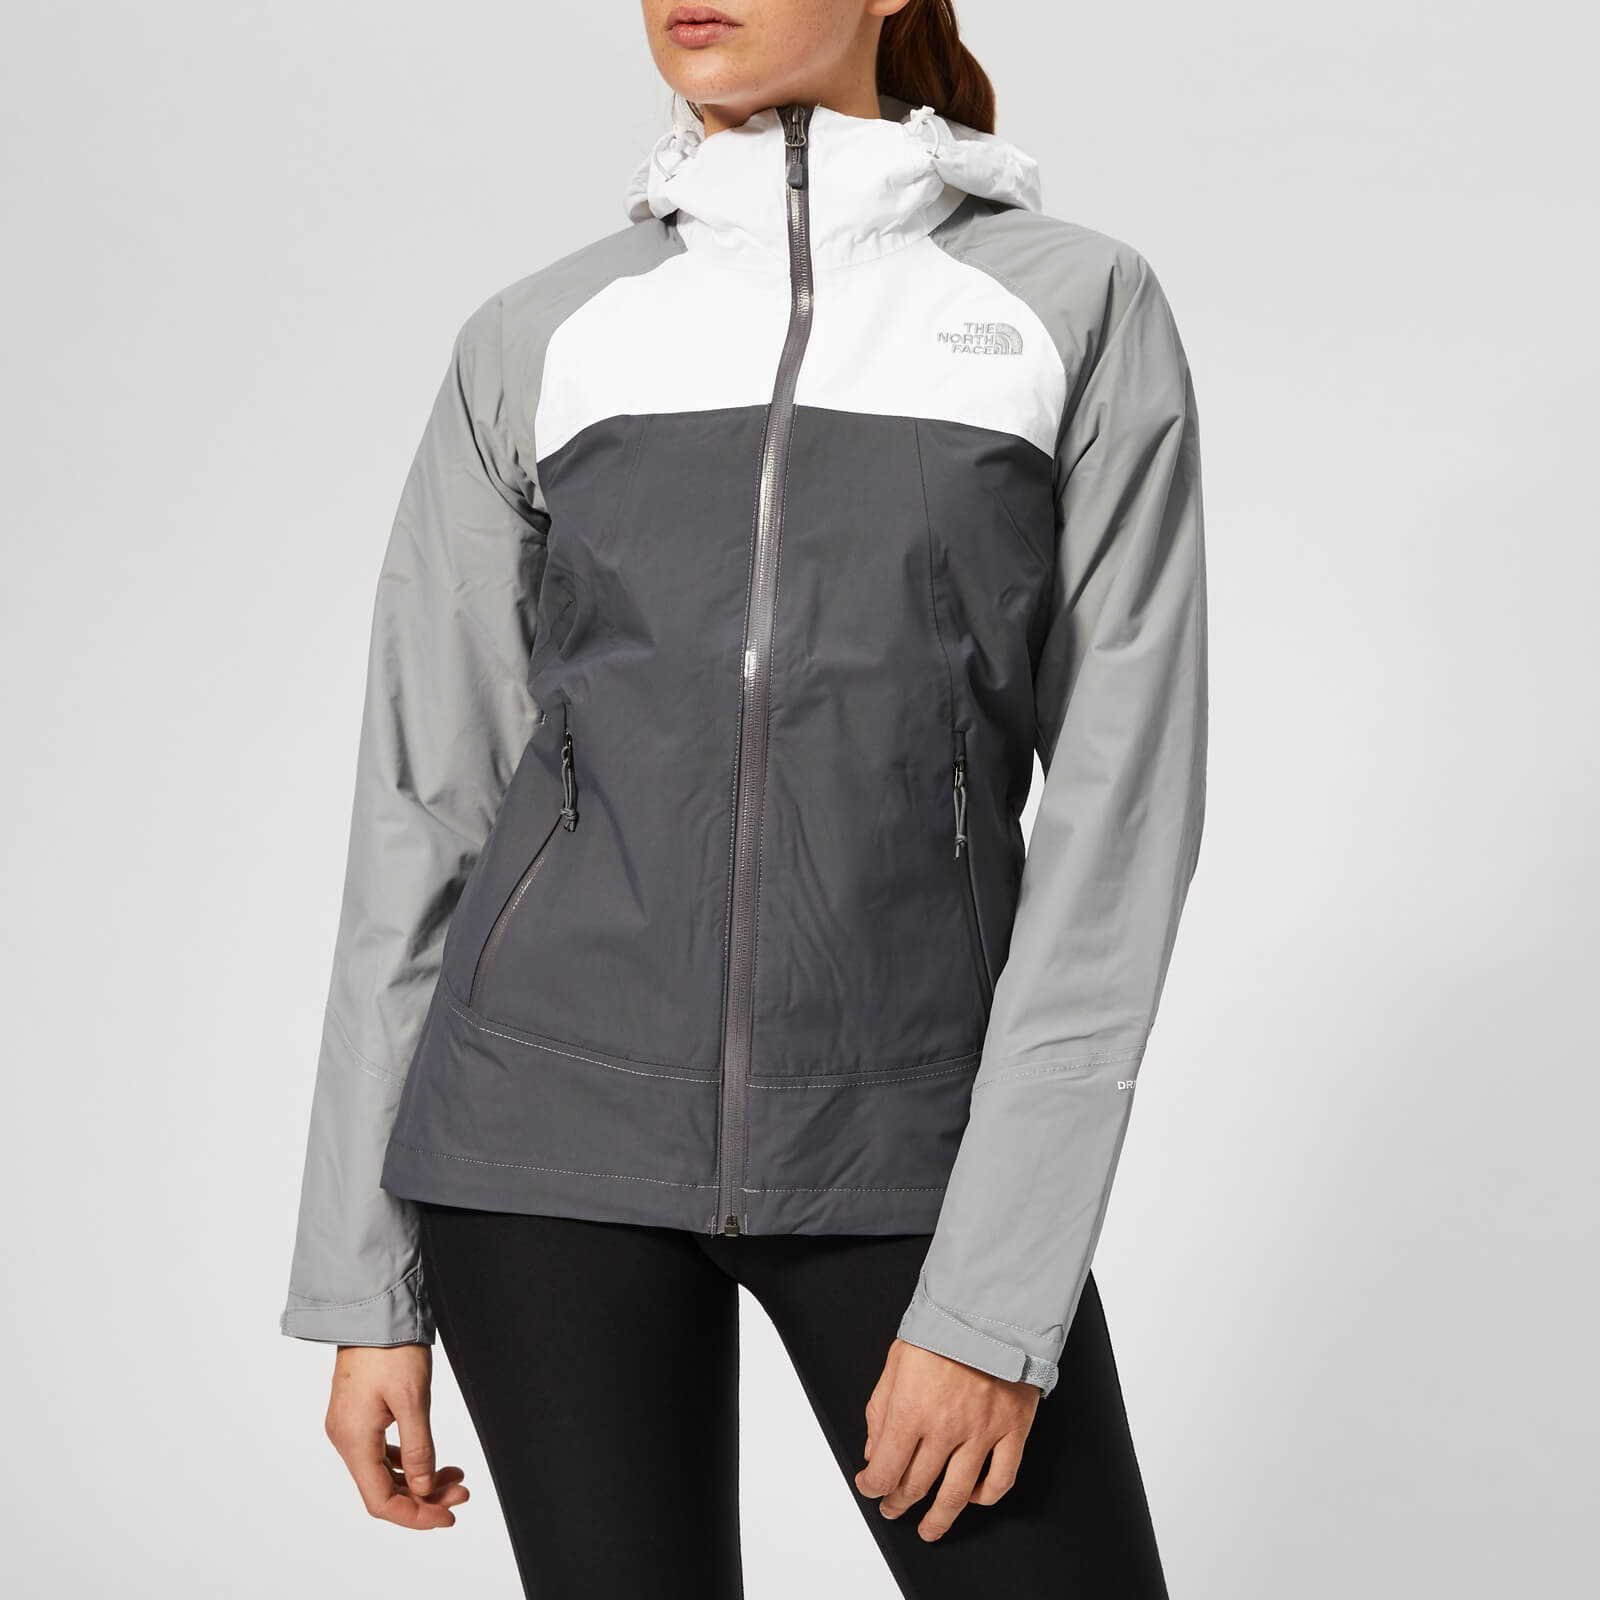 THE NORTH FACE Womens Stratos Jacket XS